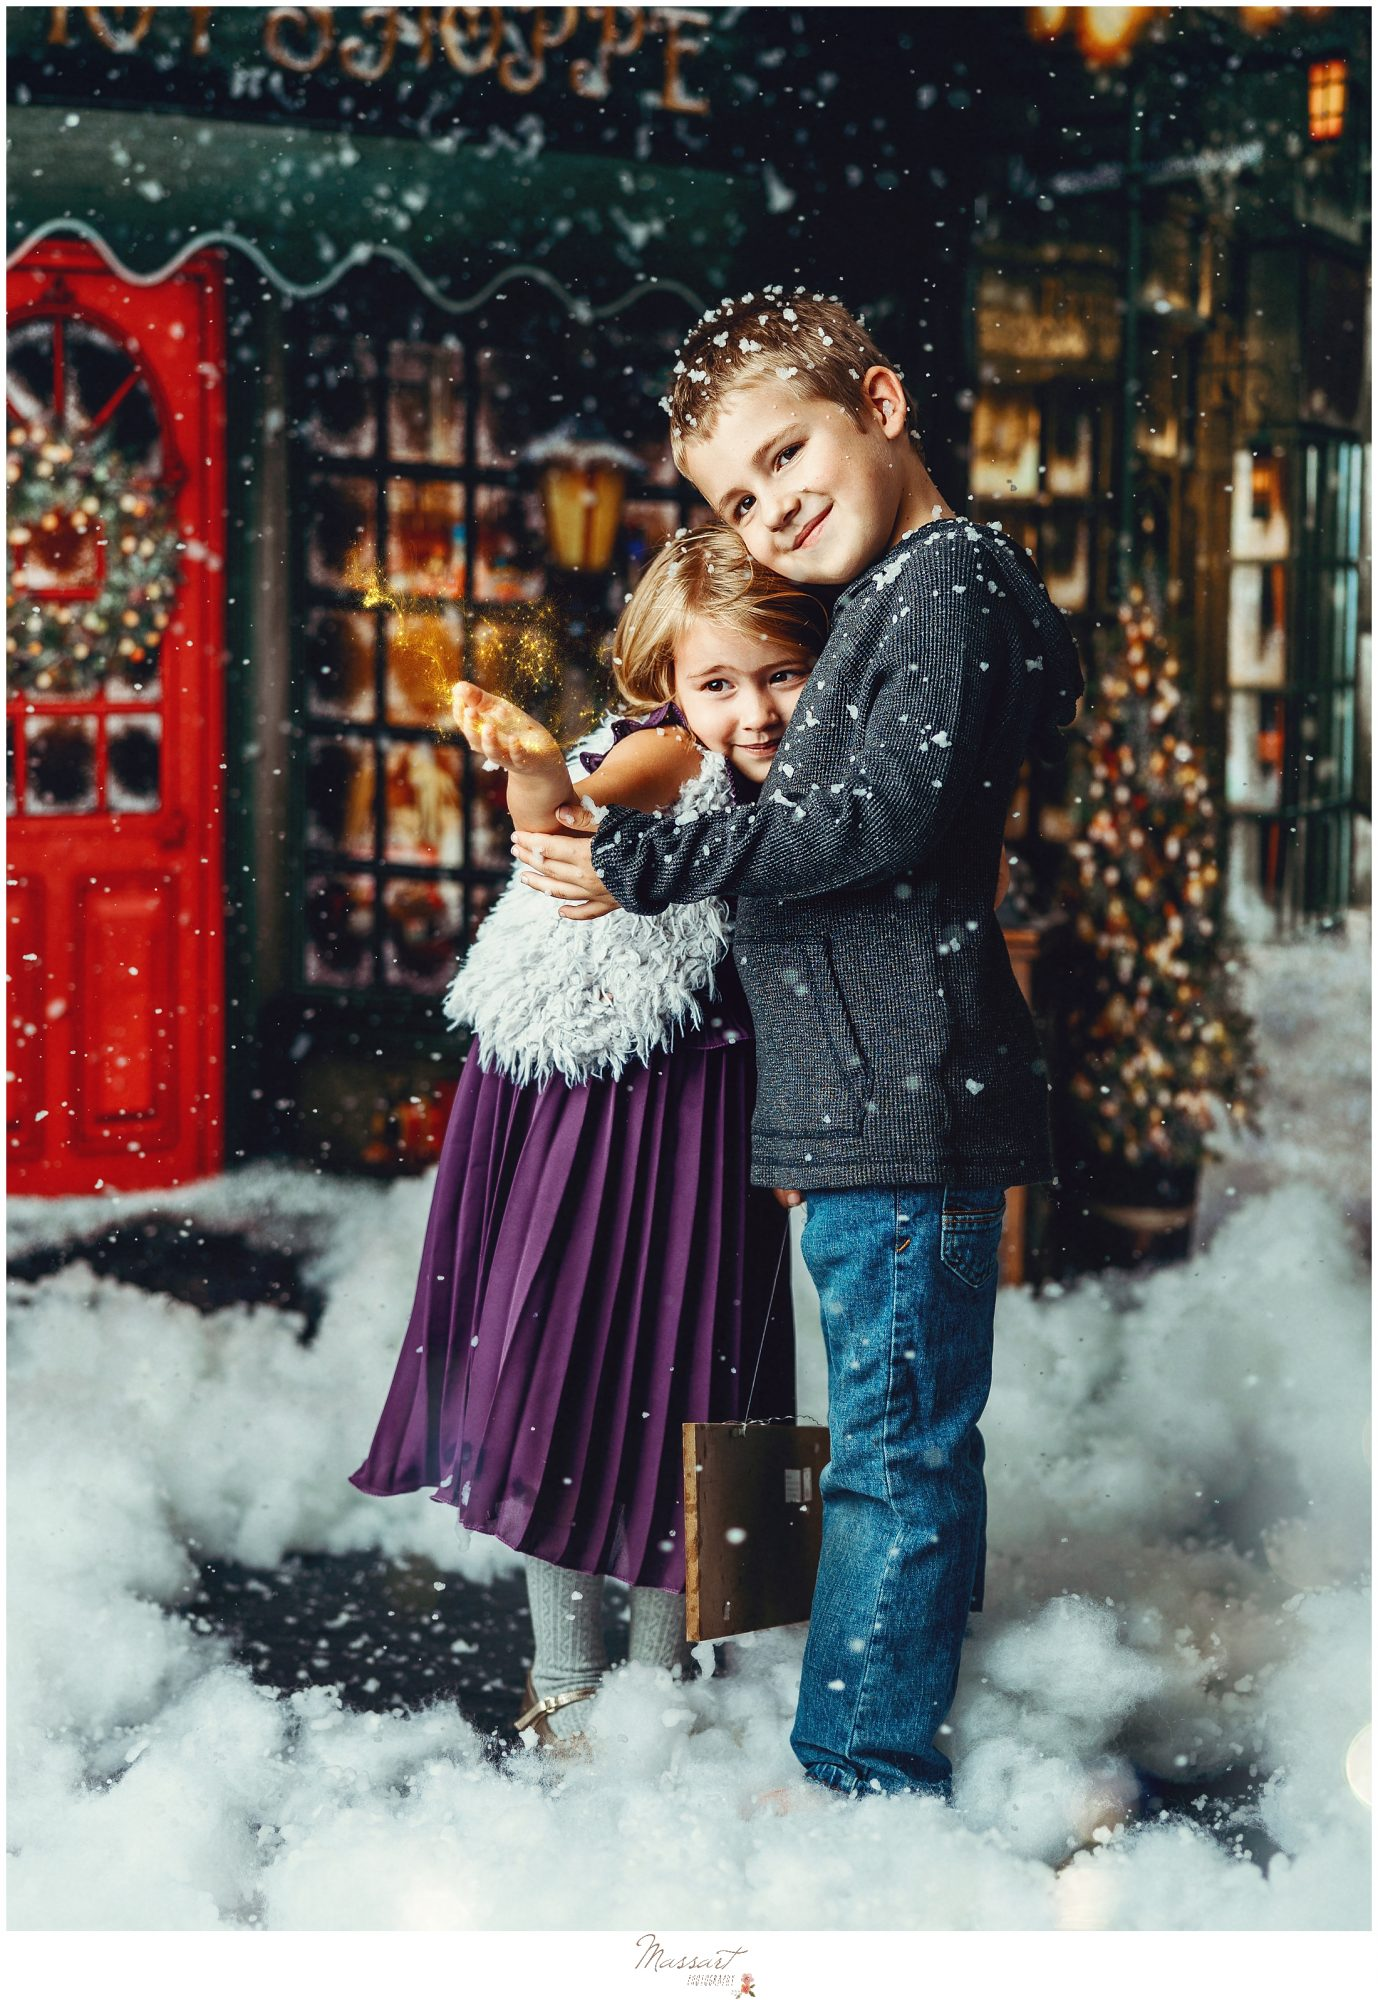 RI photographers take holiday pictures